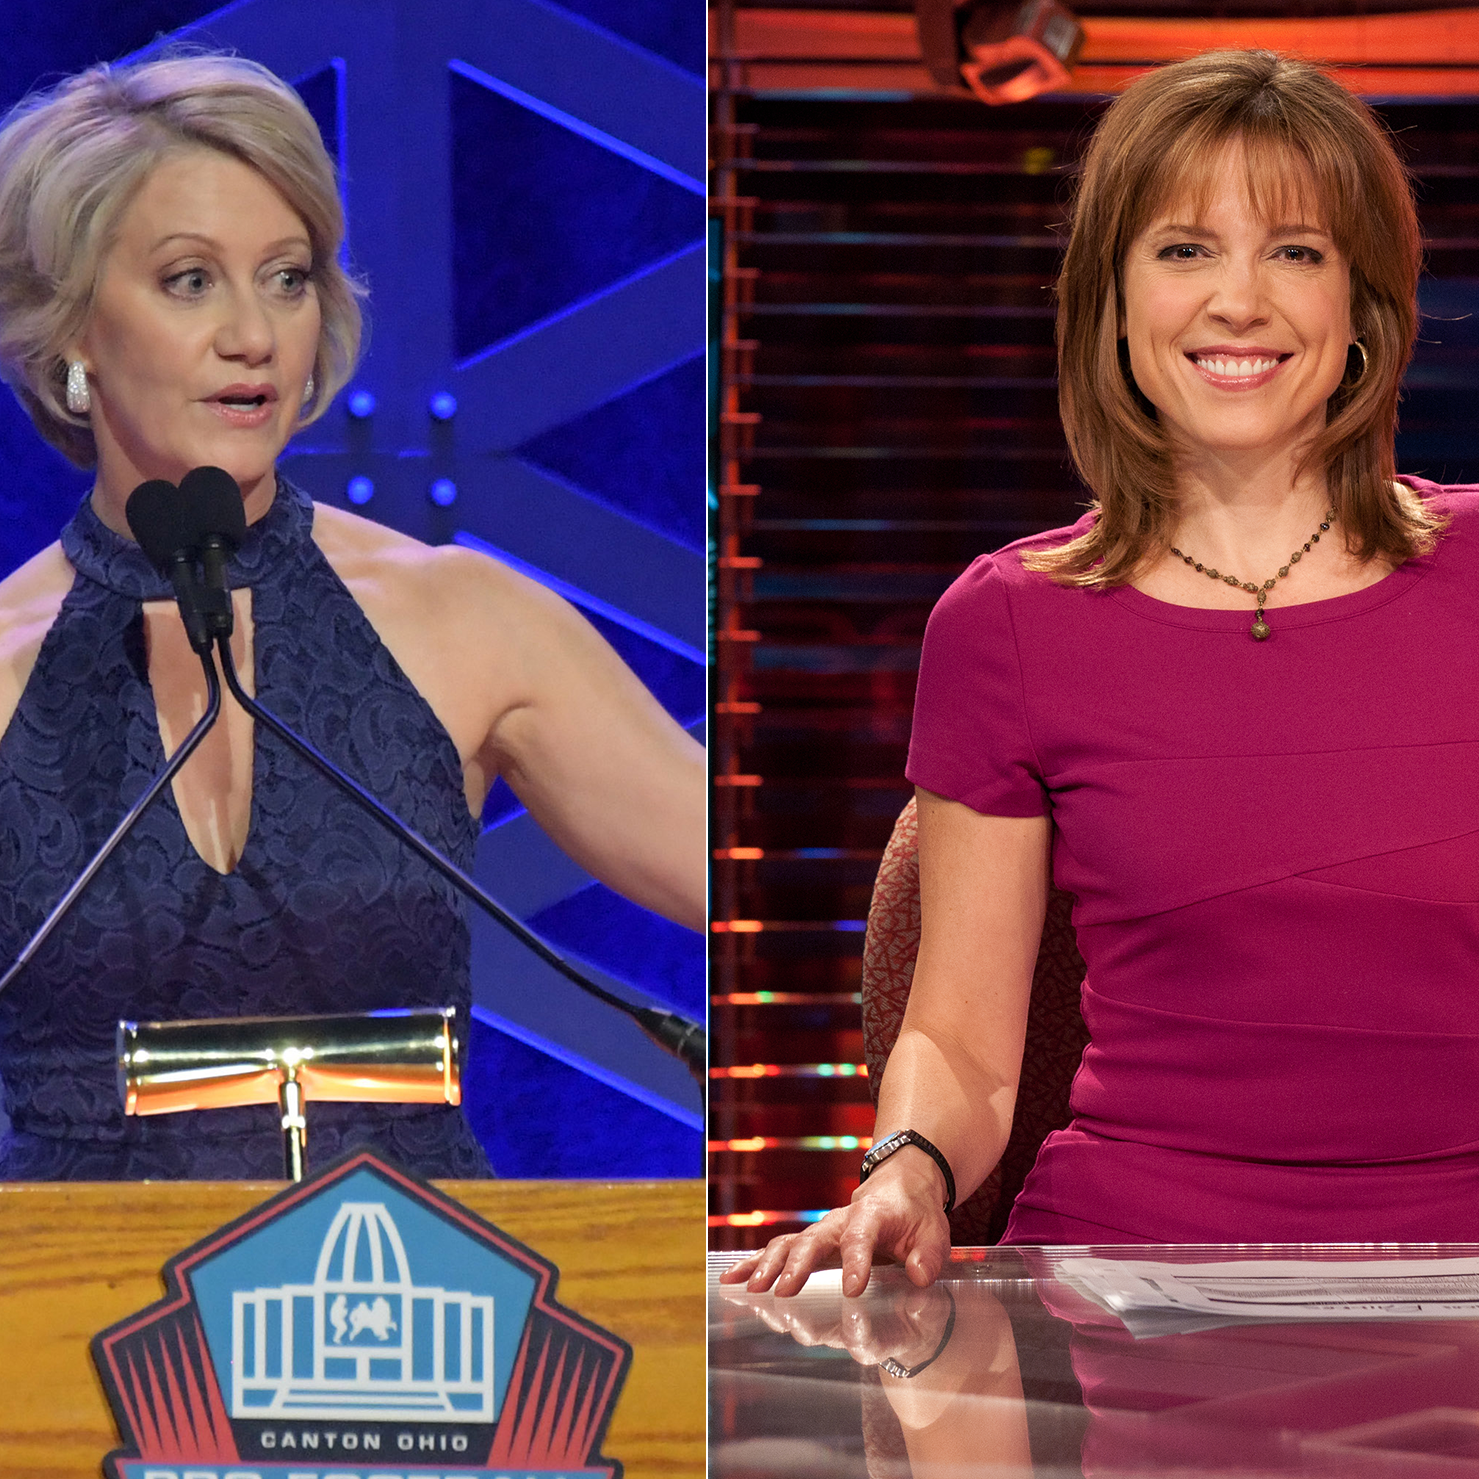 Andrea Kremer (left) and Hannah Storm (right) will be broadcasting Thursday's game between the Rams and Vikings together.